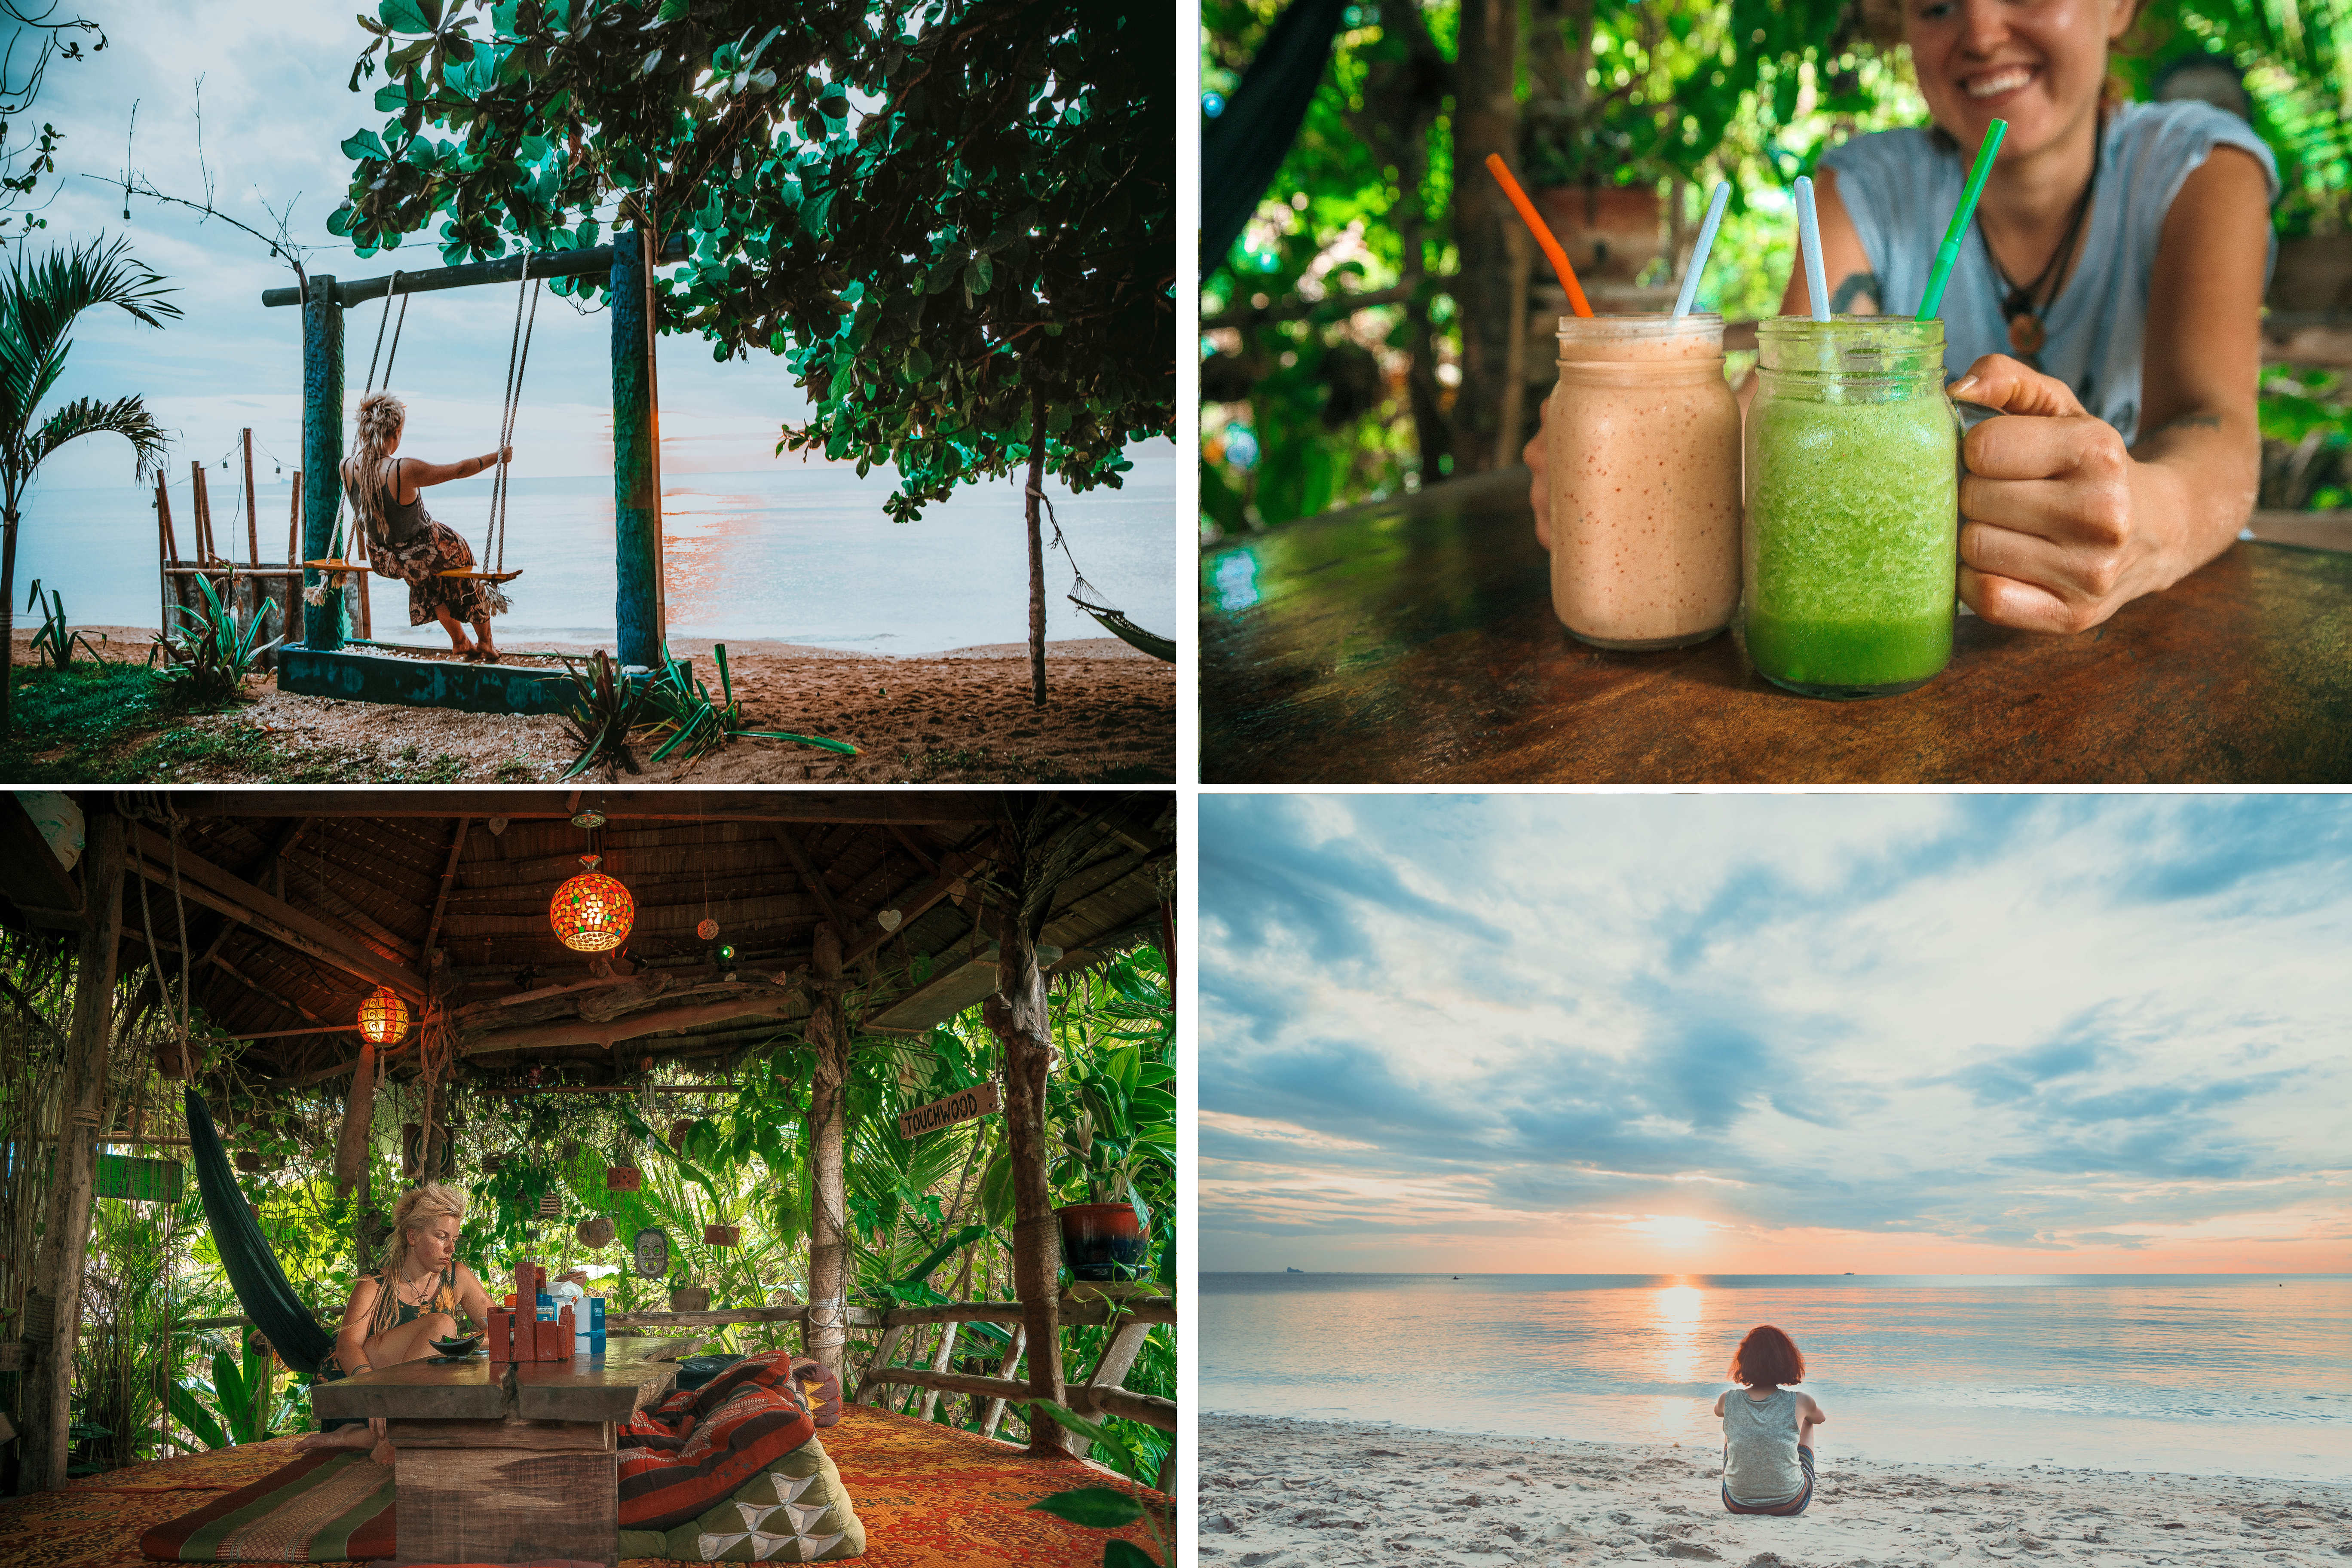 watcing magical sunset in koh lanta beach life vitamin sea drinking healthy smoothies